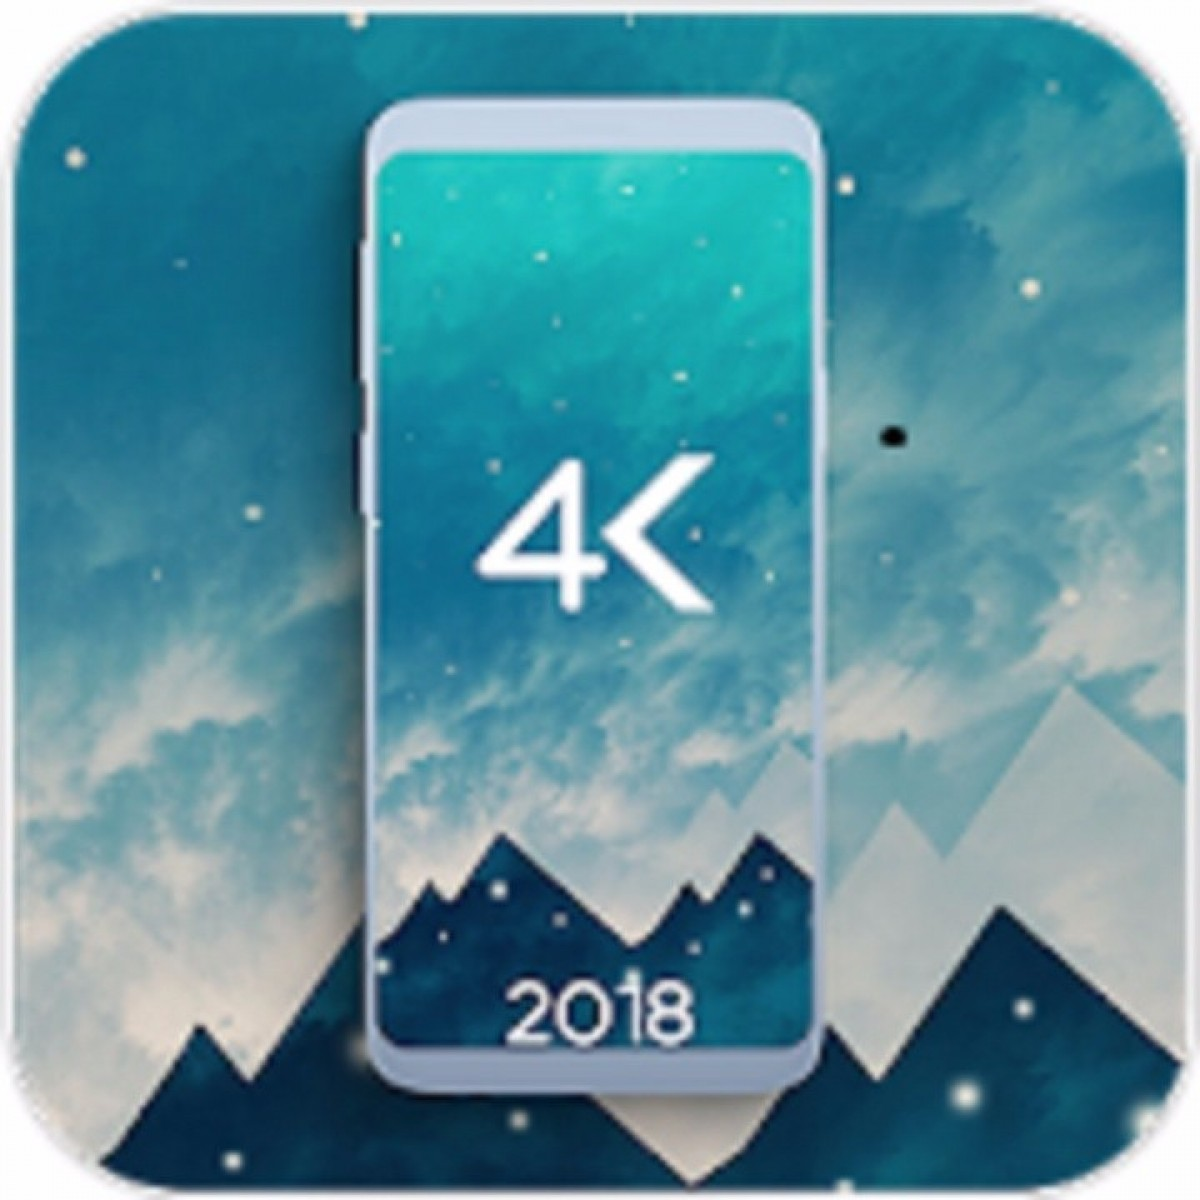 4K Wallpapers Ultra HD Backgrounds Apk  v2.6.2.2 Download